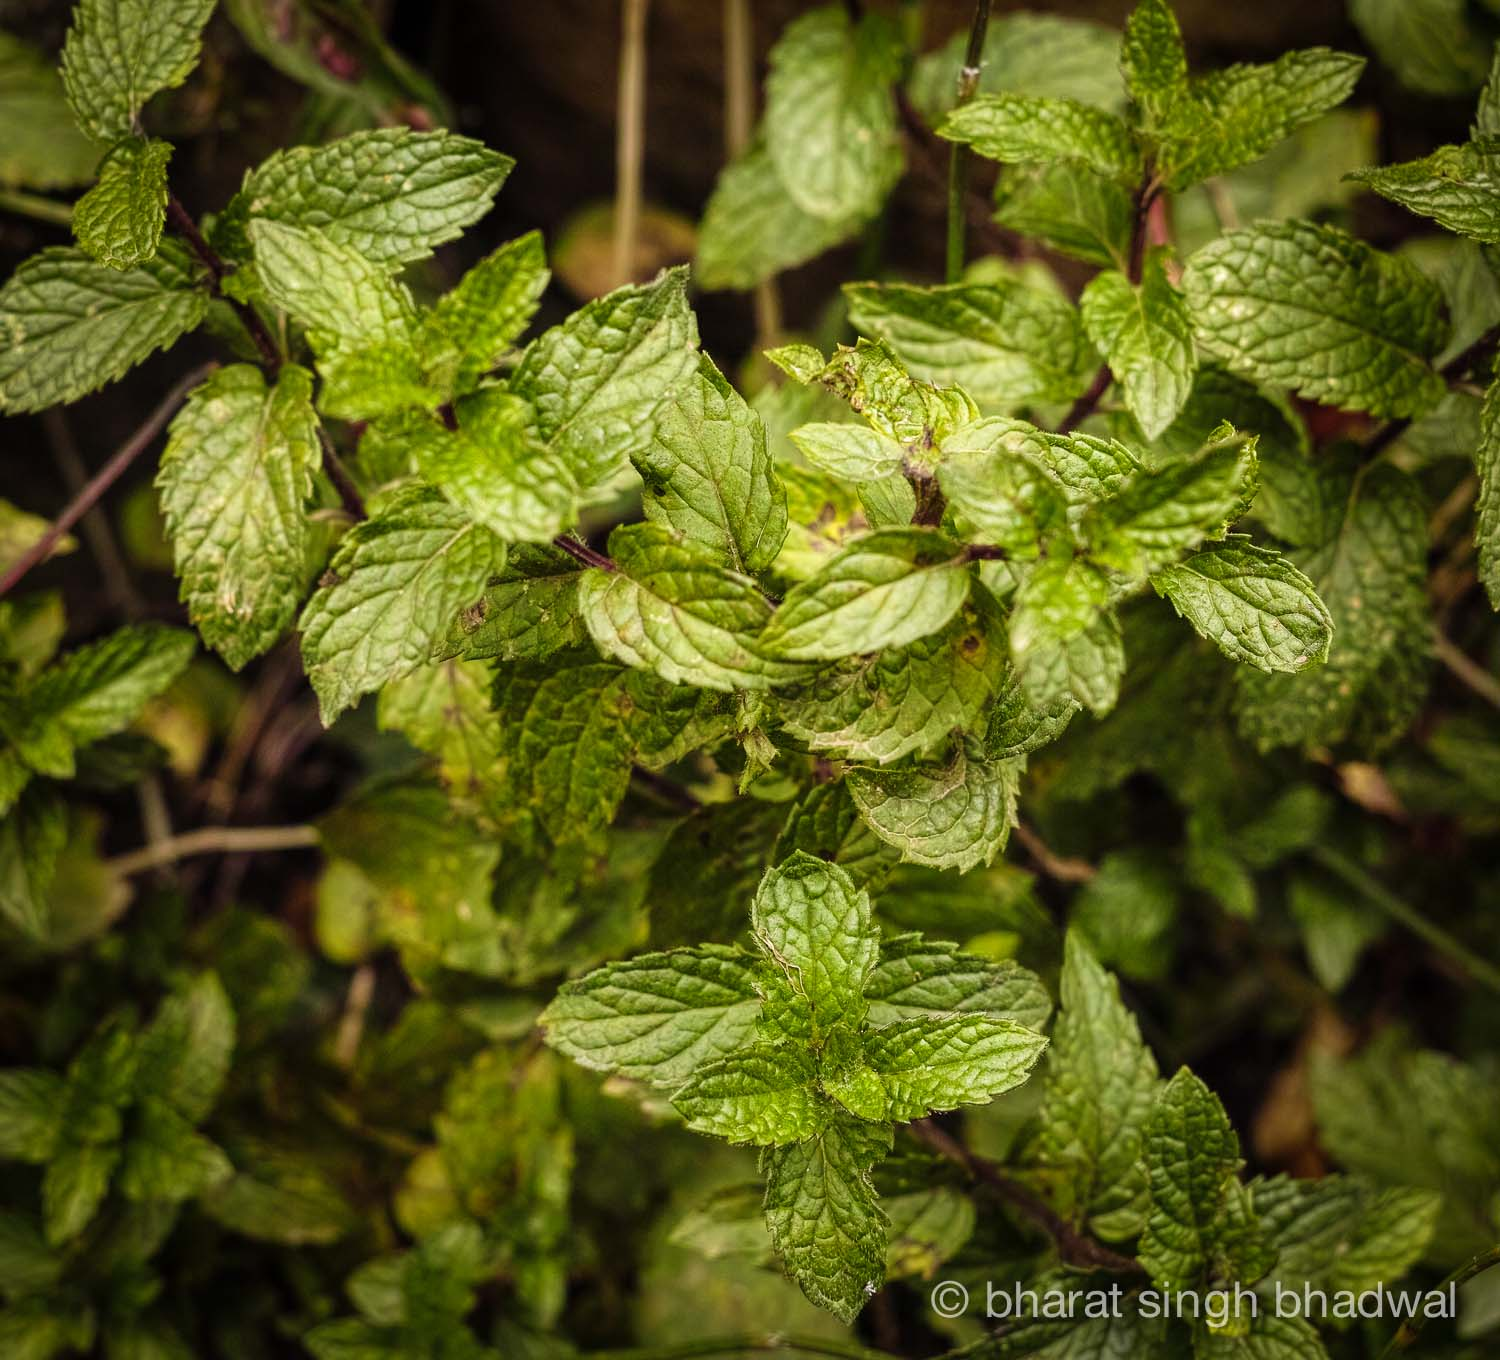 Mint grows wild in the Indian Himalayas as well